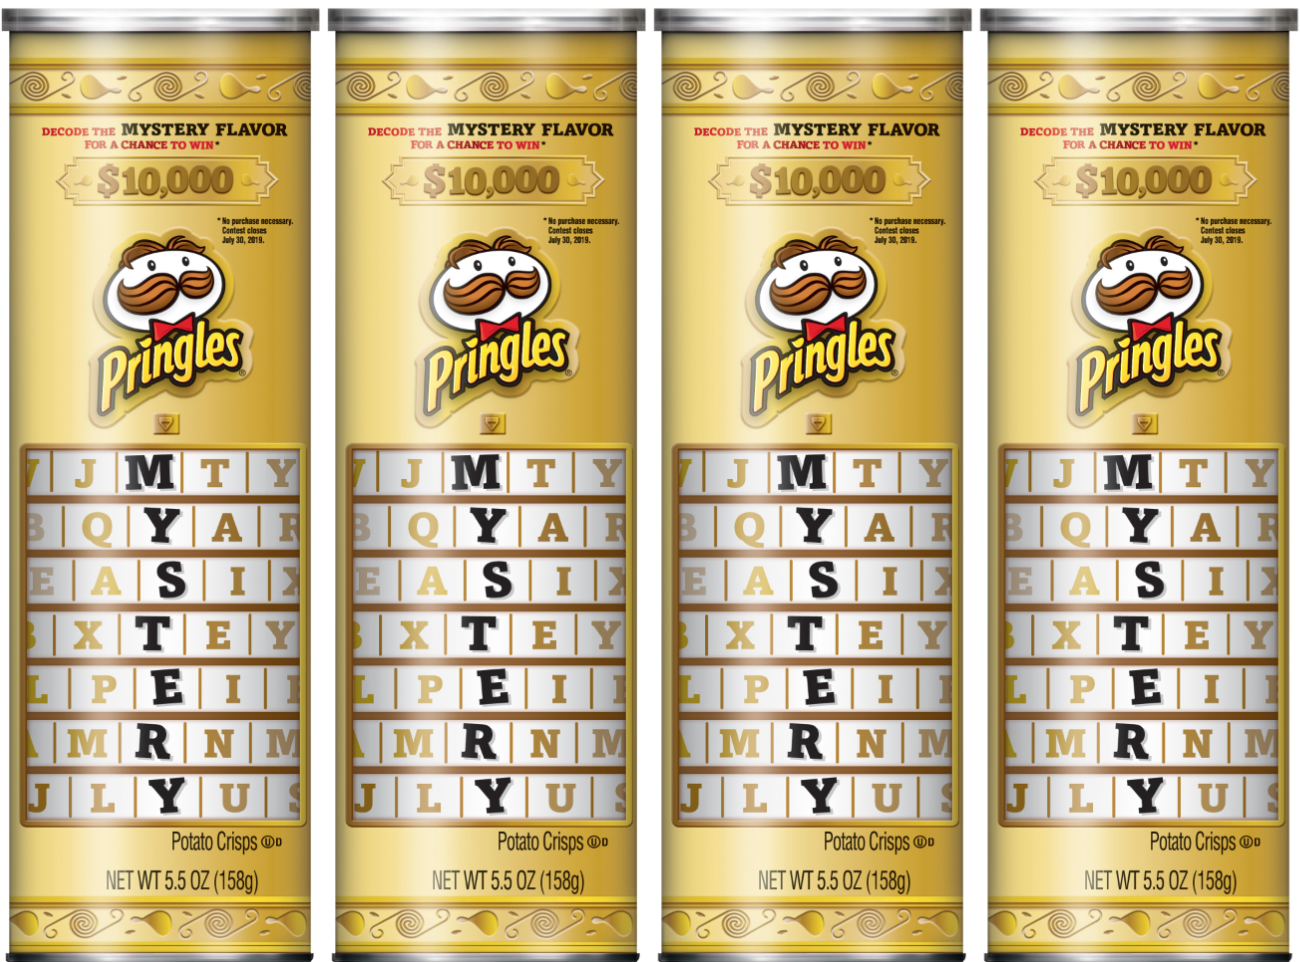 Pringles Is Launching a Mystery Flavor This Summer